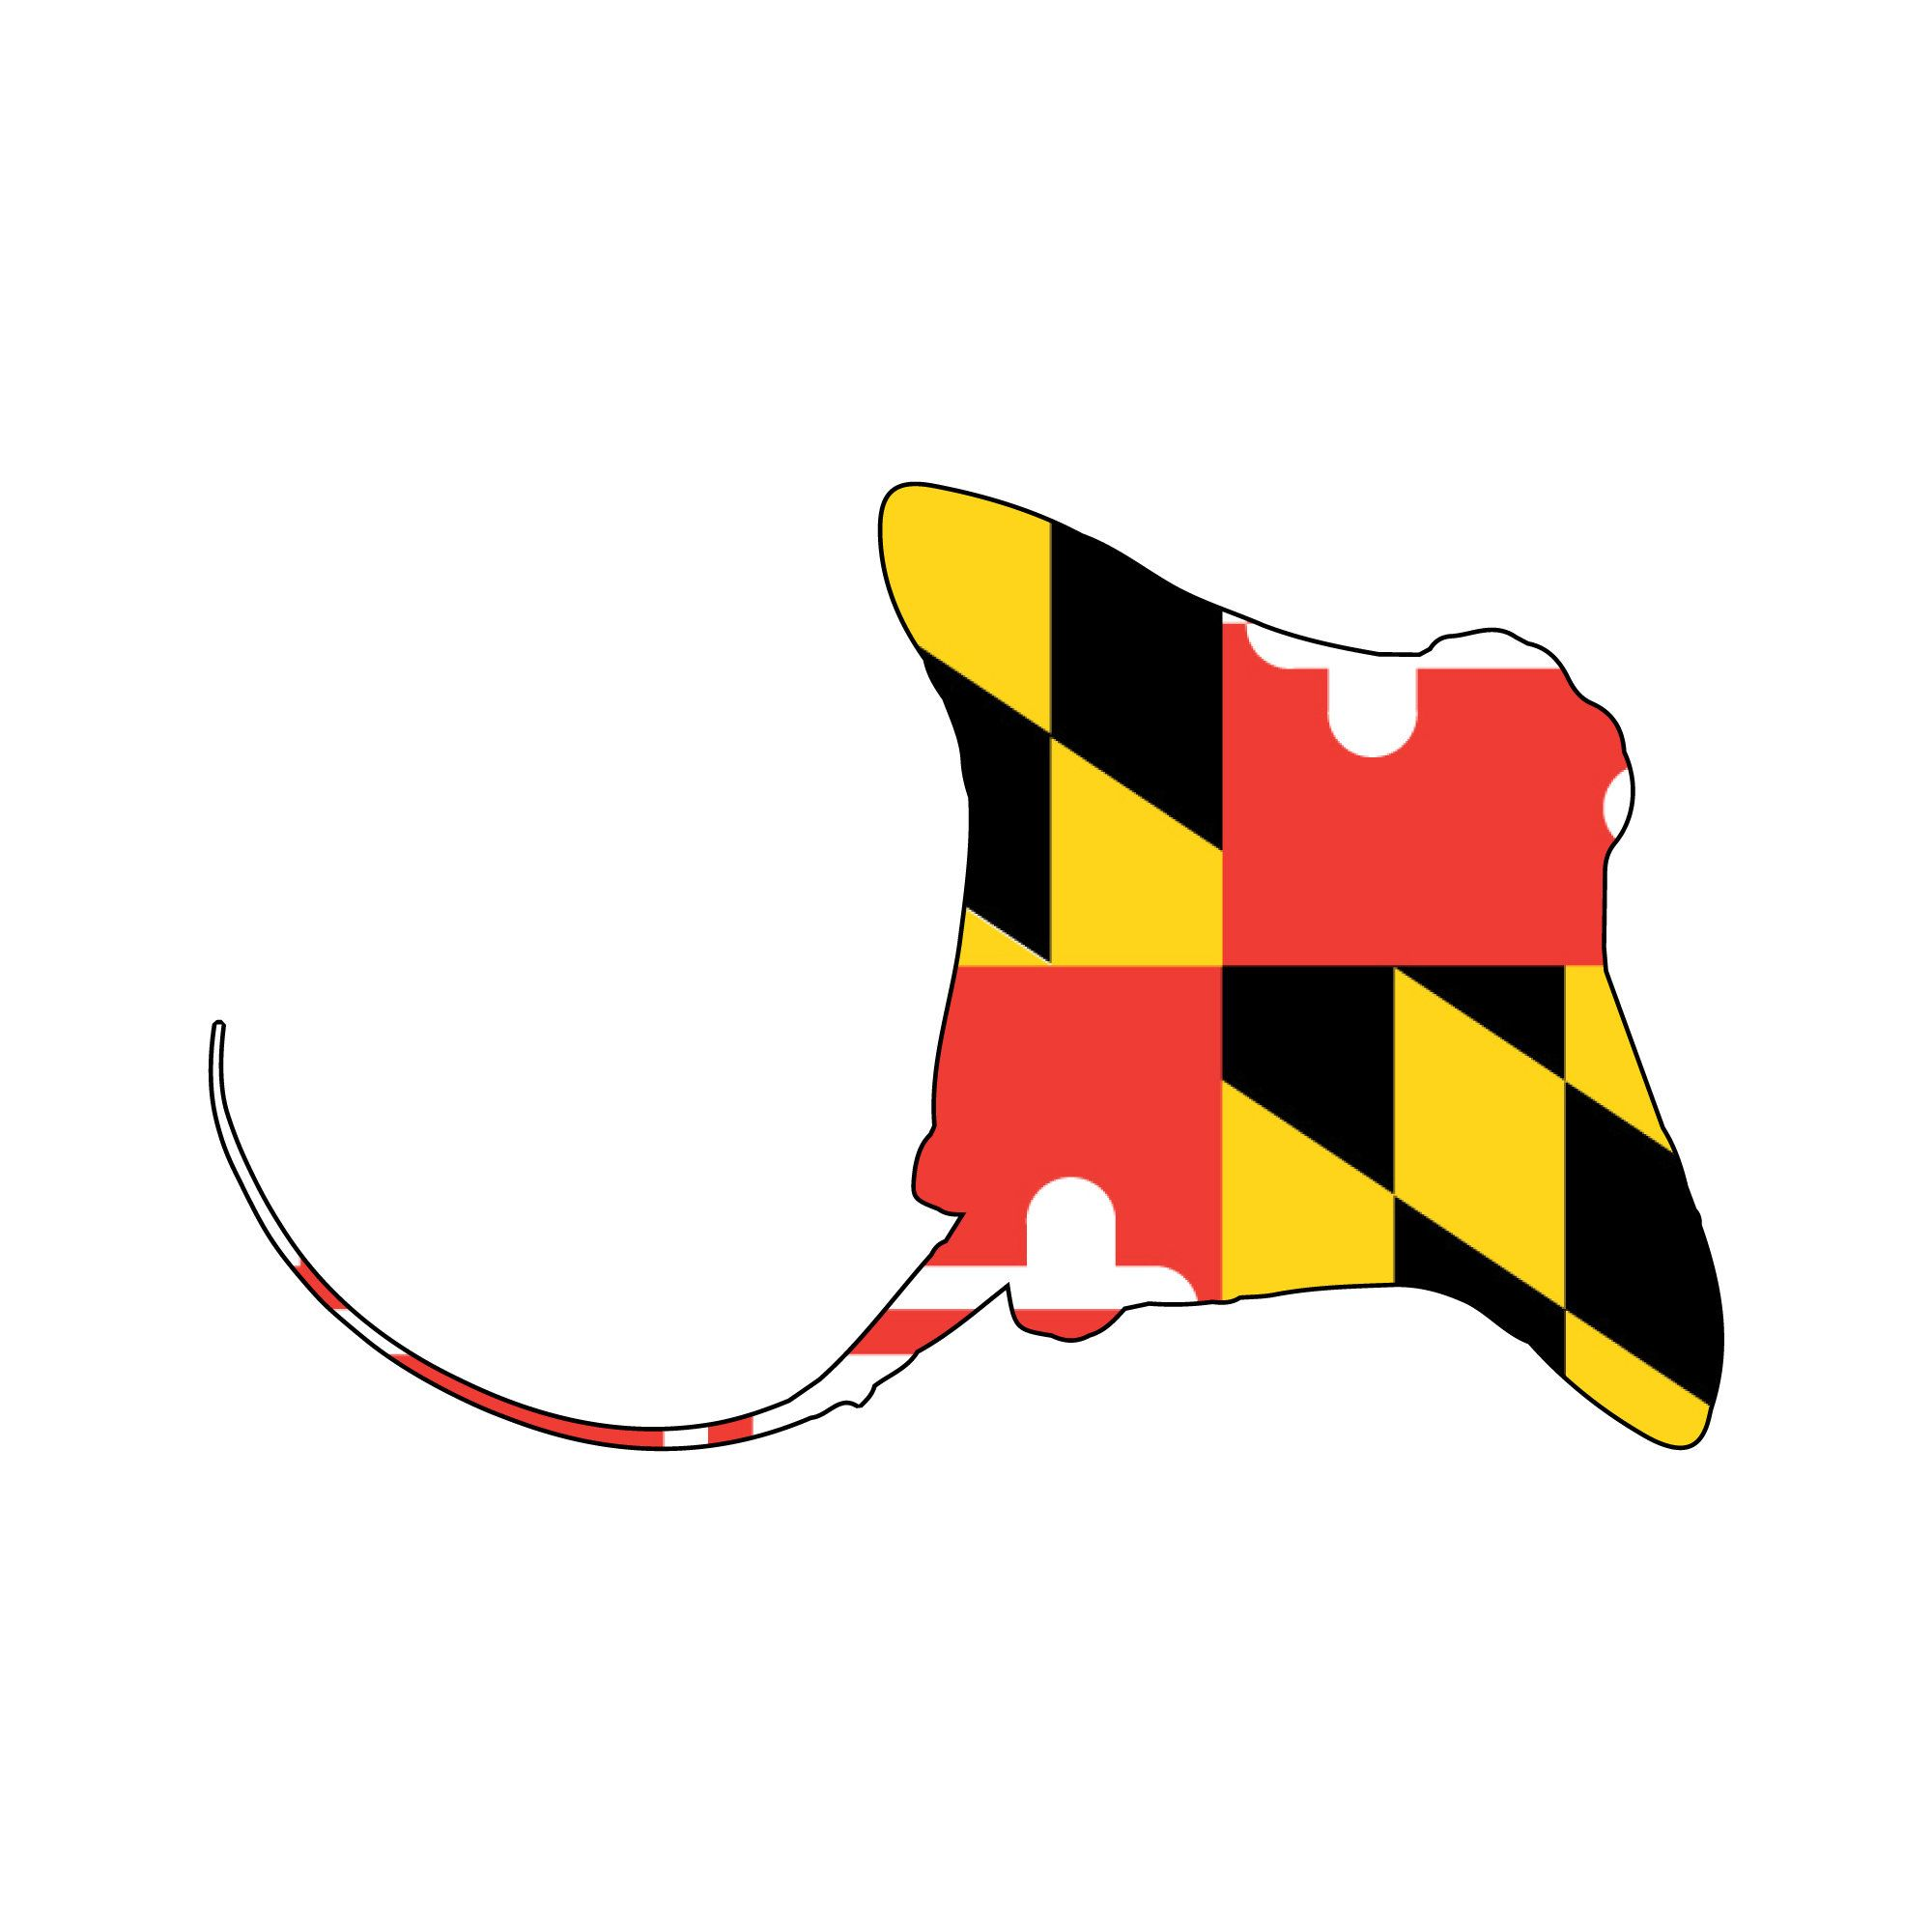 Maryland Flag Cownose Ray Decal Cownose Ray Vehicle Decal Etsy In 2020 Maryland Flag Car Decals Vinyl Decals